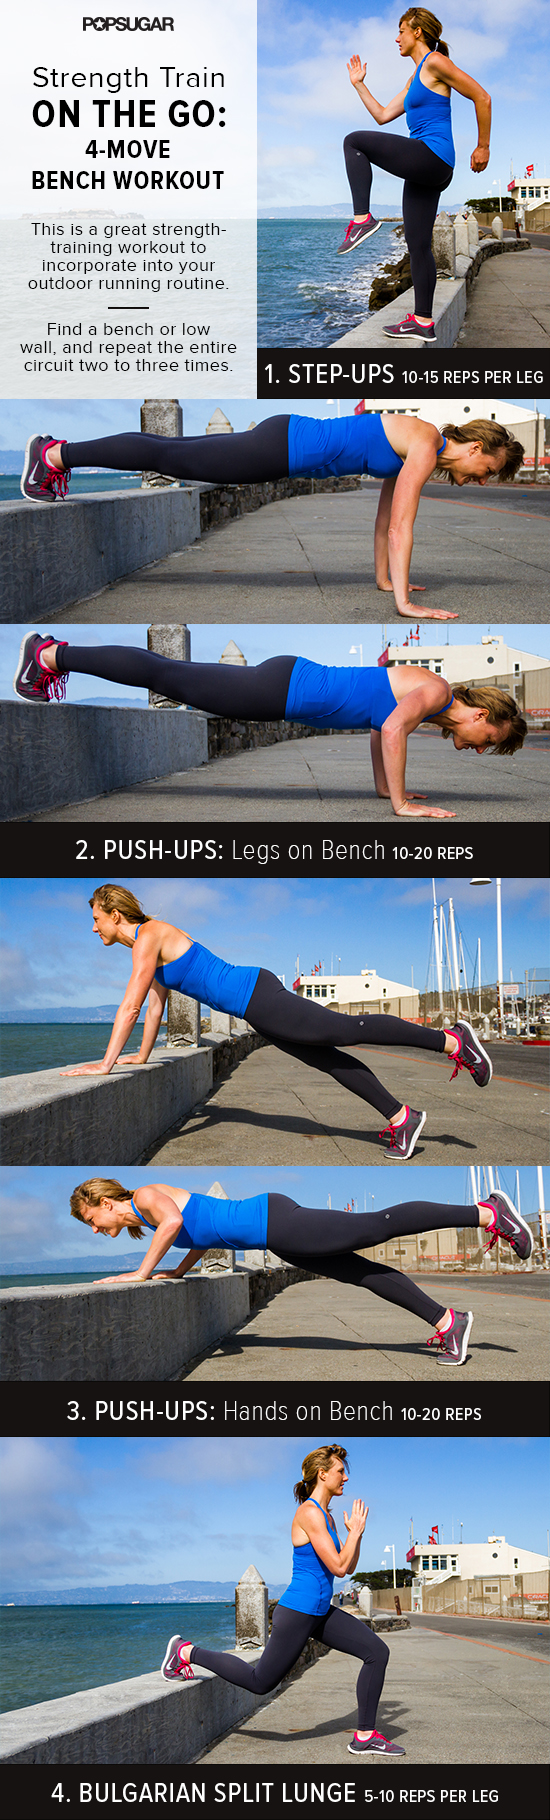 This Short And Sweet Outdoor Bench Workout Is Perfect For A Postrun Strength Training Session